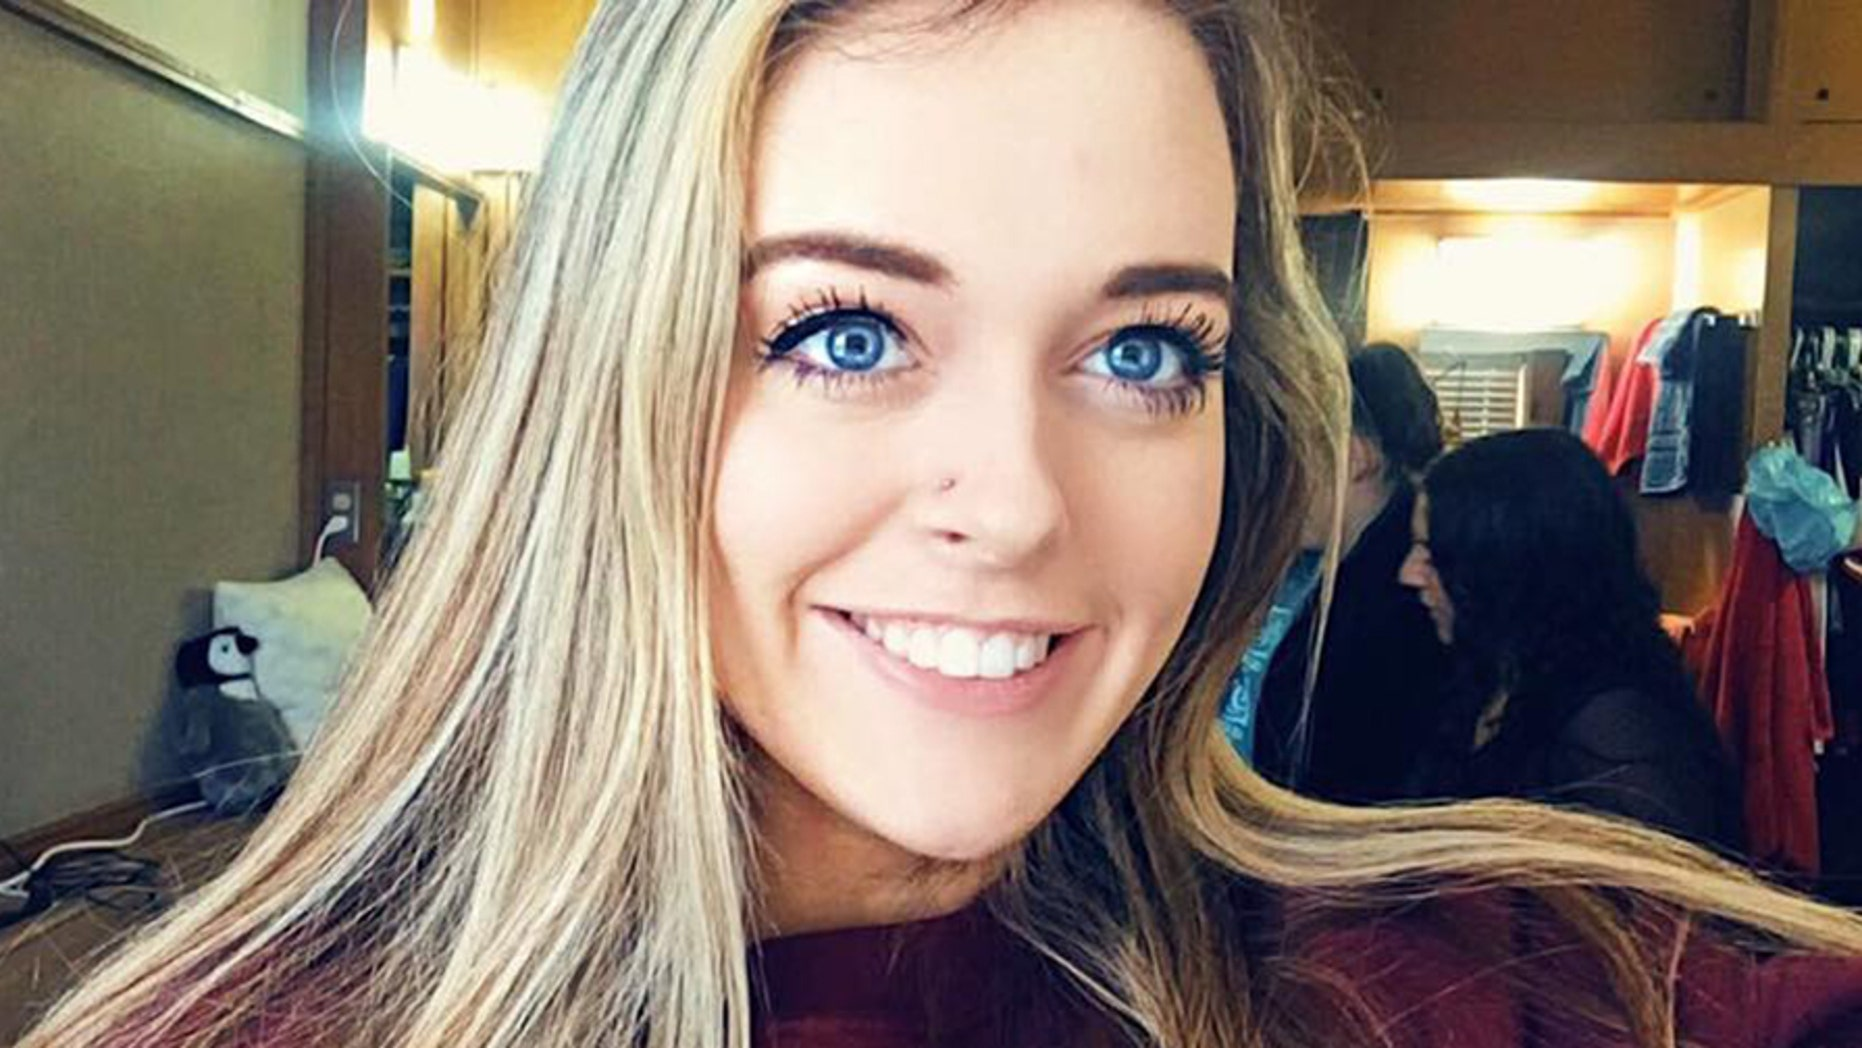 The 19-year-old college coed was pulled aside by TSA after flashing her college's salute at a traveler wearing a Texas Tech hoodie.